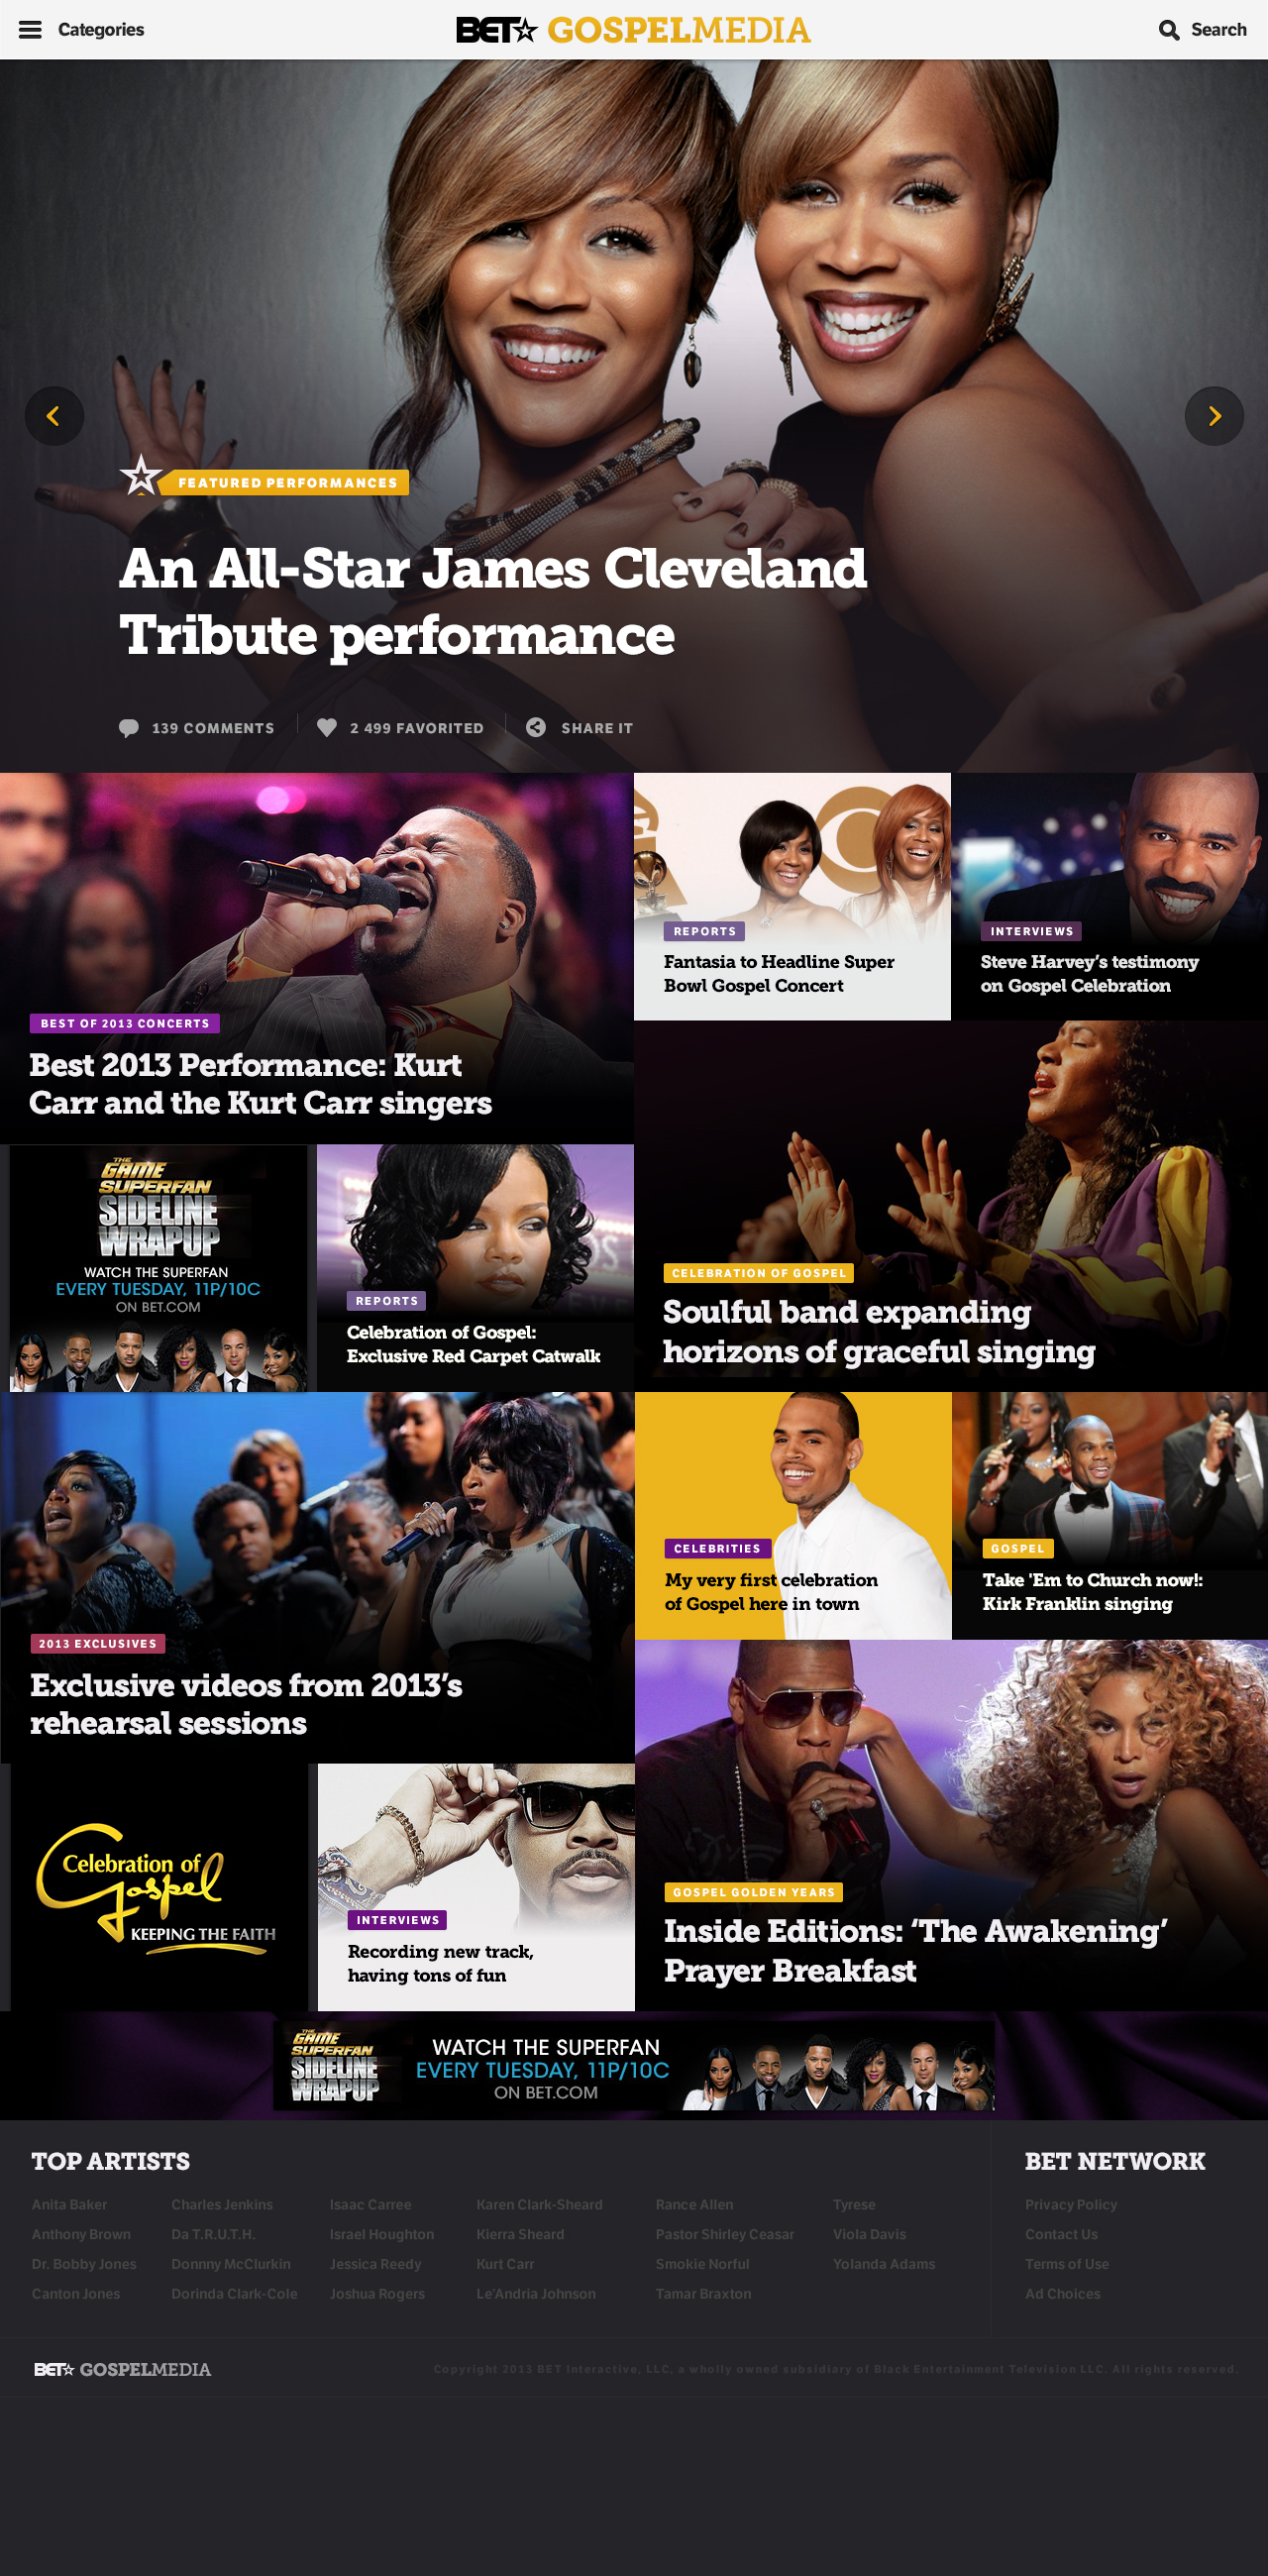 BET — The Gospel video source